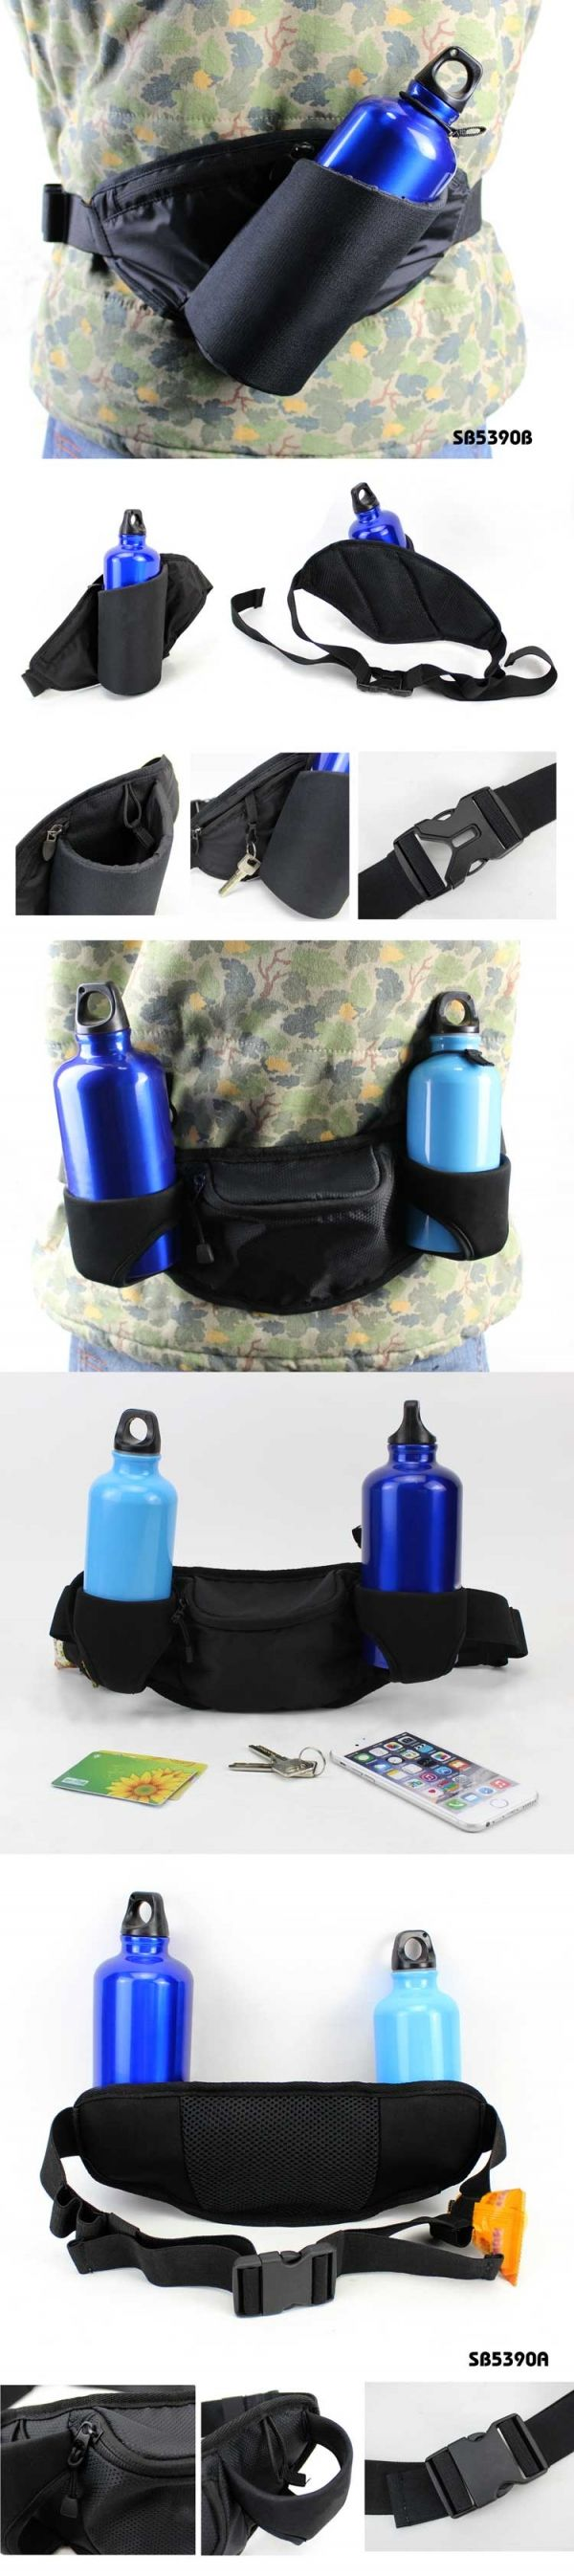 waist bag with water bottle holder ● Material:4228 Jacquard/PU,bottle holder:5MM EVA lining     ● Size:31.5*17.5*9.5CM    ● Big logo printing area    ● OEM design is welcome     Packing :        1pc/OPP bag Carton size :  38*32*45CM/50PCS G.W./N.W.:      11/10(kgs)